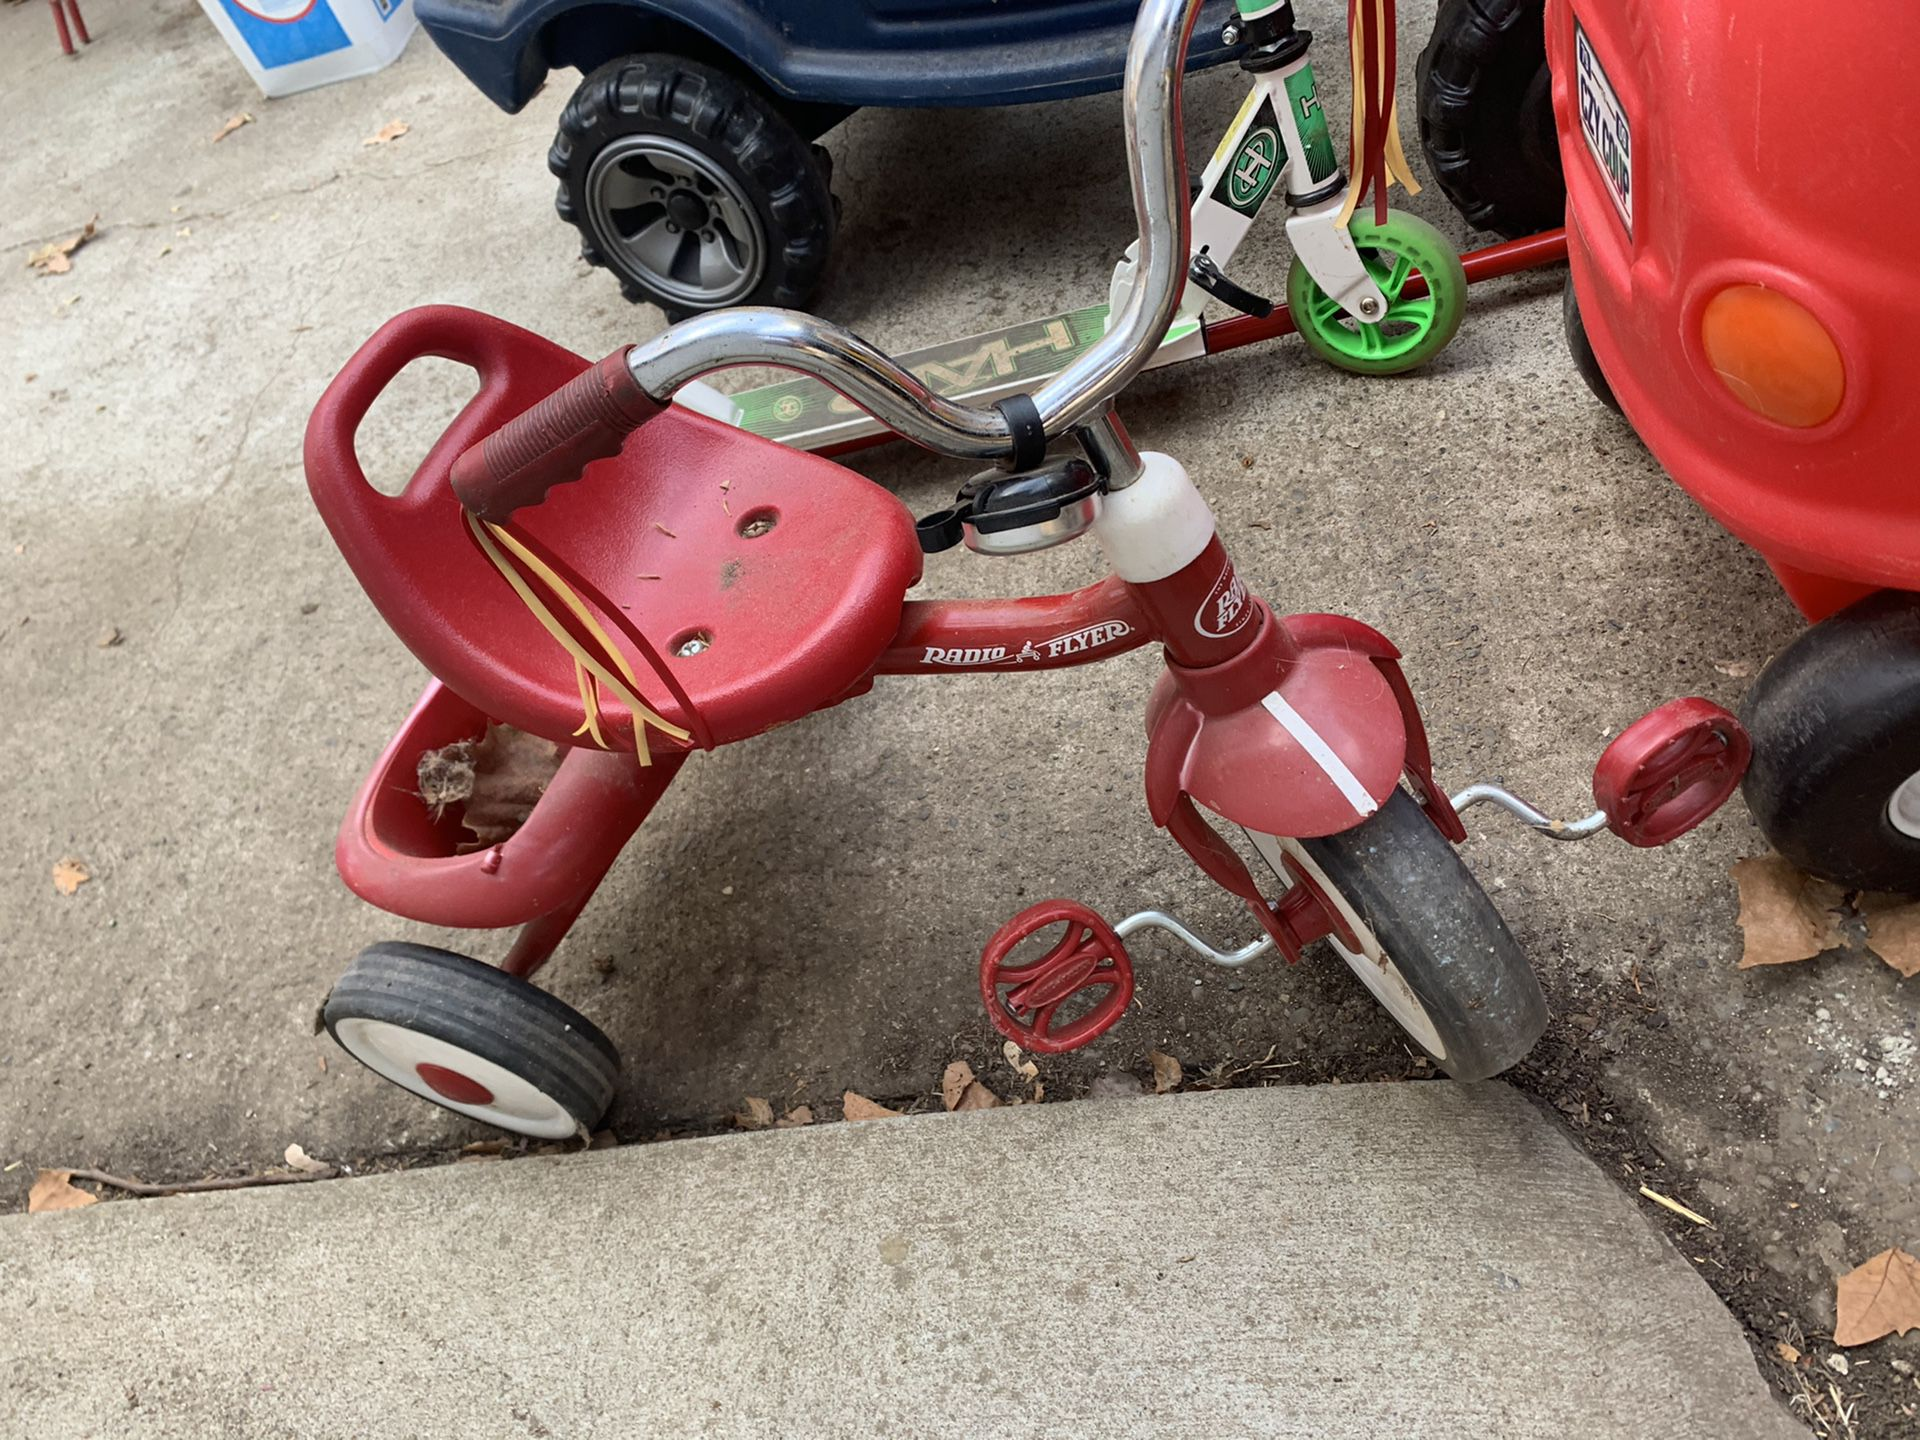 Radio flyer first tricycle